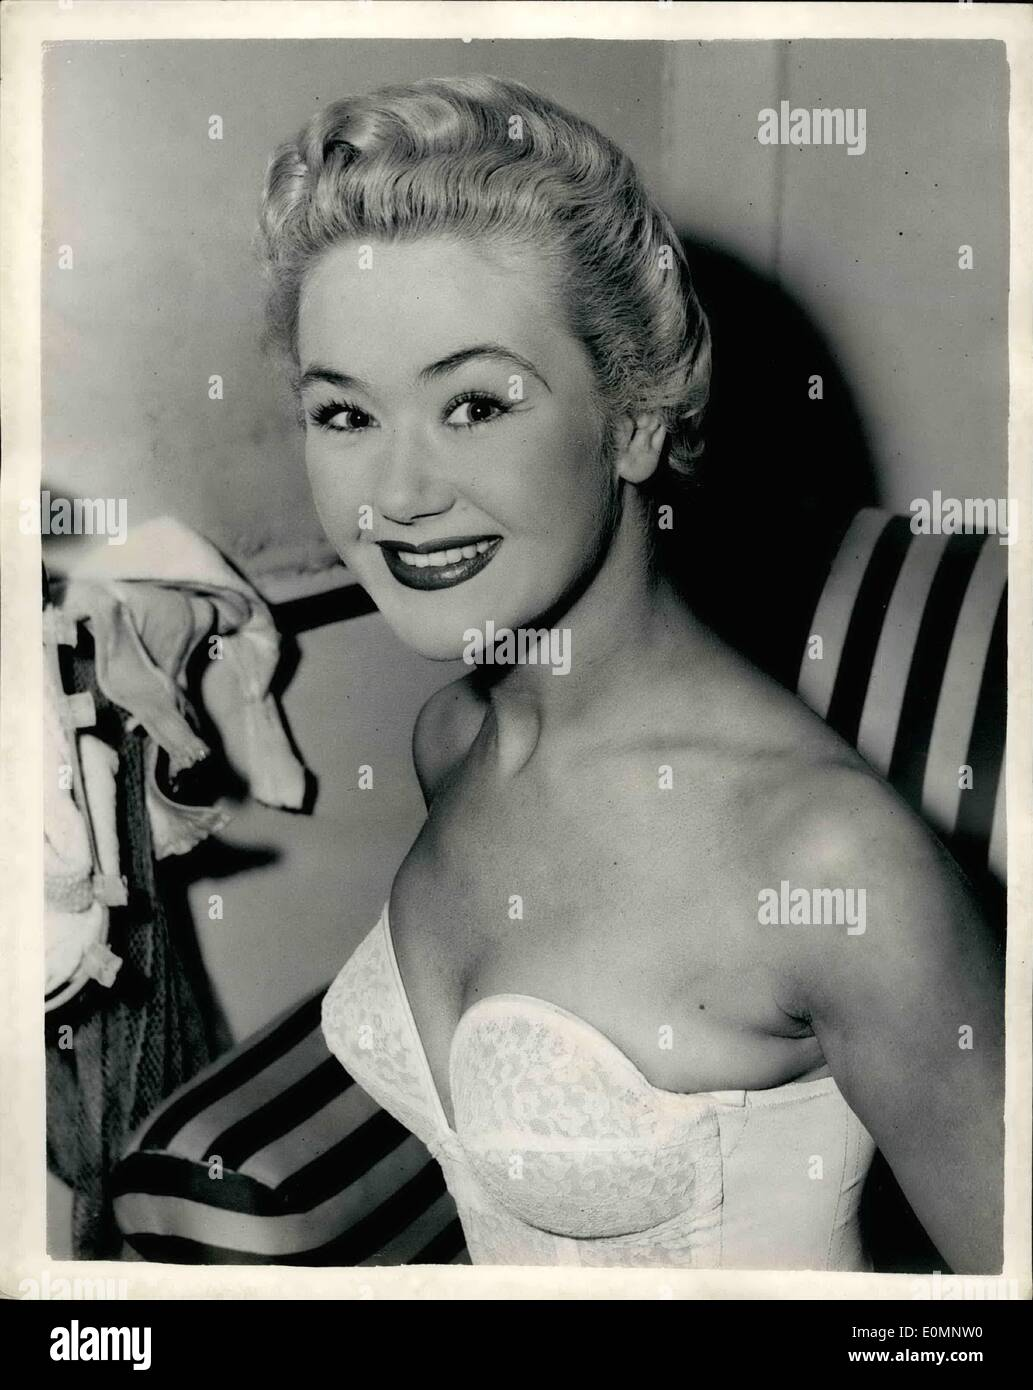 Apr. 04, 1956 - Susan Irvin takes over from Joy Nicholls, who is ill in ''The Pajama Game''; Because Joy Nicholls, the star of ''The Pajama Game'' at the Coliseum, has laryngitis, 21 year old Susan Irvin, who has been her stand in for 14 months, takes over the part today. Photo Shows Susan Irvin, seen in a happy mood in the star's dressing room, just before she went on stage for this afternoon's matinee. - Stock Image